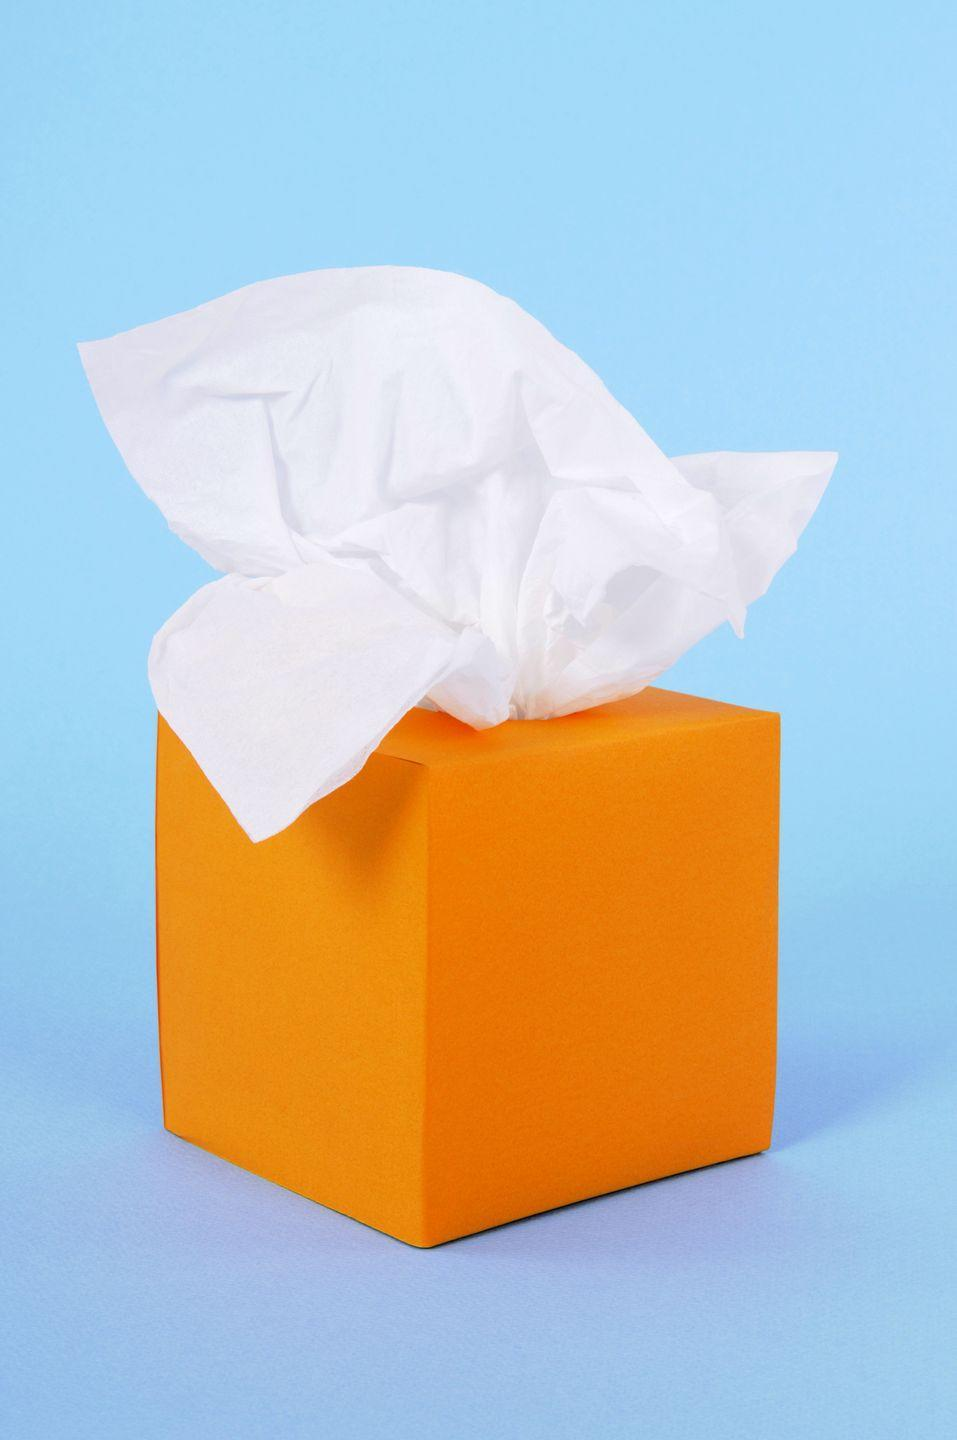 """<p>Getting a sudden urge to sneeze as the trees bloom? When pollen gets released by an offending plant and makes its way into your nose, your immune system tells your brain to eject it by force. </p><p>If you're not sure whether you're dealing with <a href=""""https://www.prevention.com/health/a34106117/covid-19-vs-fall-allergies/"""" rel=""""nofollow noopener"""" target=""""_blank"""" data-ylk=""""slk:allergies or a cold, flu, or COVID-19"""" class=""""link rapid-noclick-resp"""">allergies or a cold, flu, or COVID-19</a>, know this: If it's allergies, you won't have a fever or feel the aches and extreme exhaustion that come with a virus, says Dr. Hui. (That said, <a href=""""https://acaai.org/allergies/allergy-symptoms/fatigue"""" rel=""""nofollow noopener"""" target=""""_blank"""" data-ylk=""""slk:allergies can make you feel a bit tired"""" class=""""link rapid-noclick-resp"""">allergies can make you feel a bit tired</a> if your symptoms start to disturb your sleep.) <br></p>"""